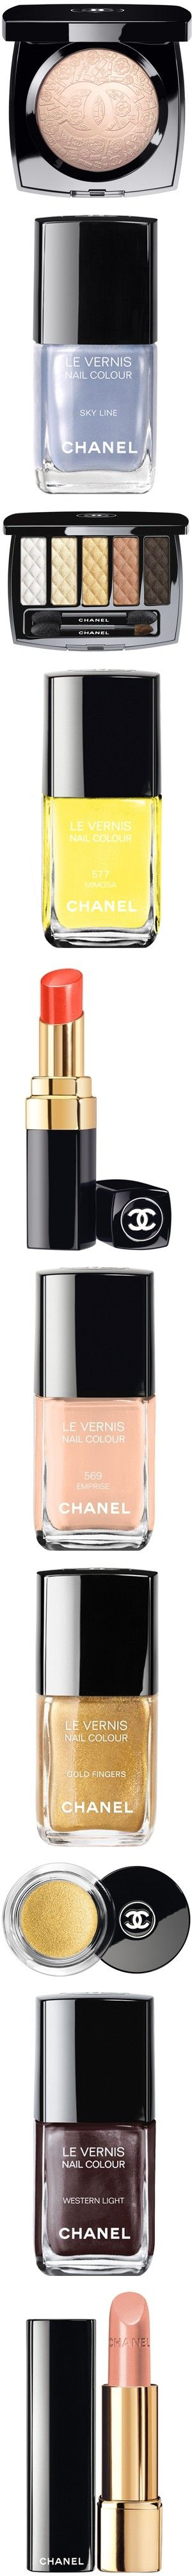 """""""Chanel - Limited Edition Colors"""" by chanel on Polyvore"""